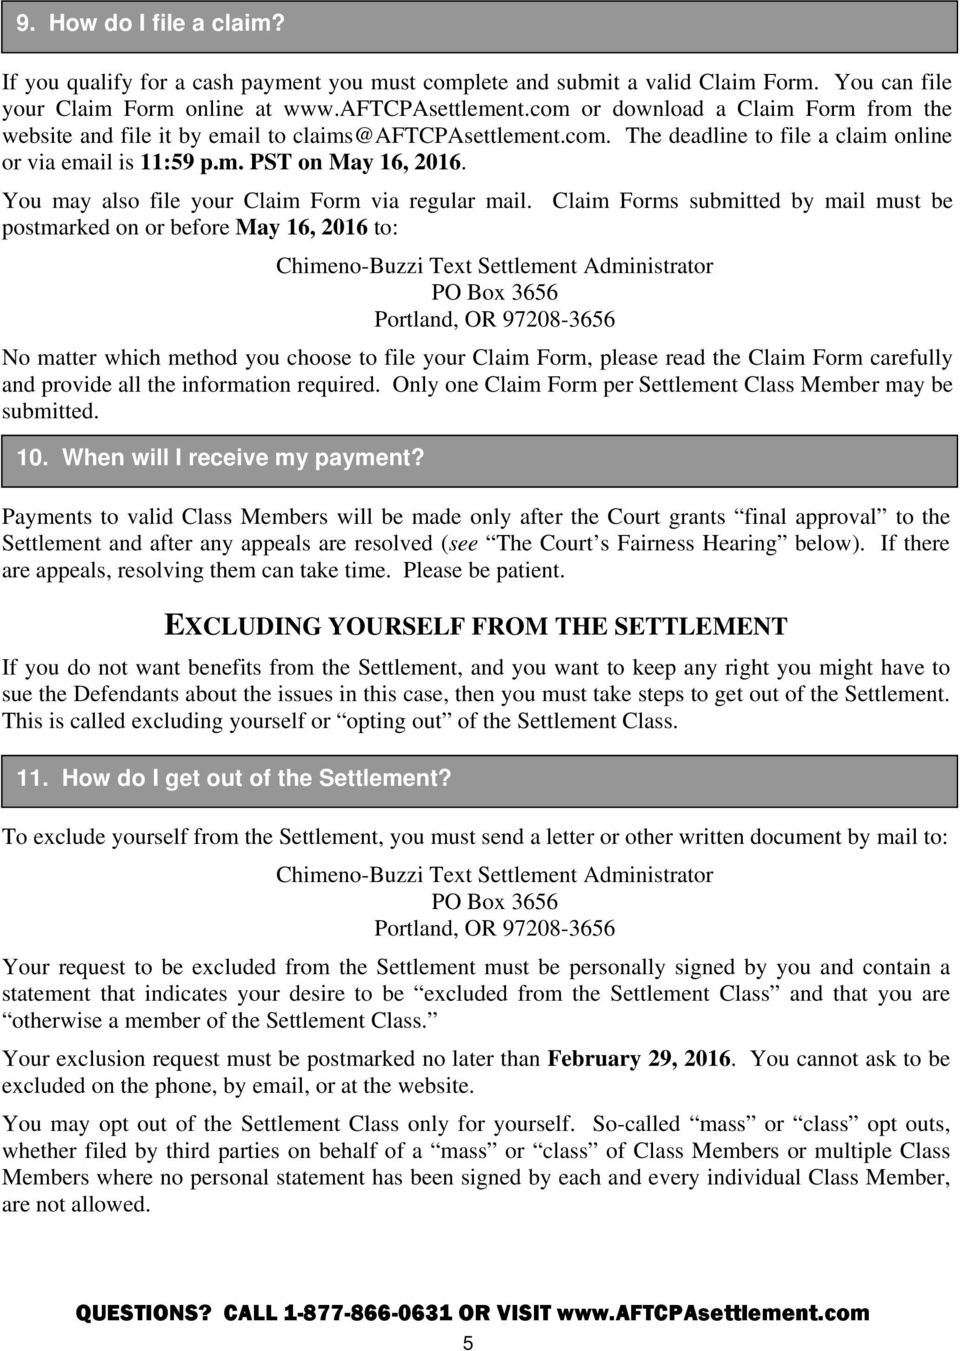 Sc Tcpa Settlement Claim Form - The Best Settlement In Word